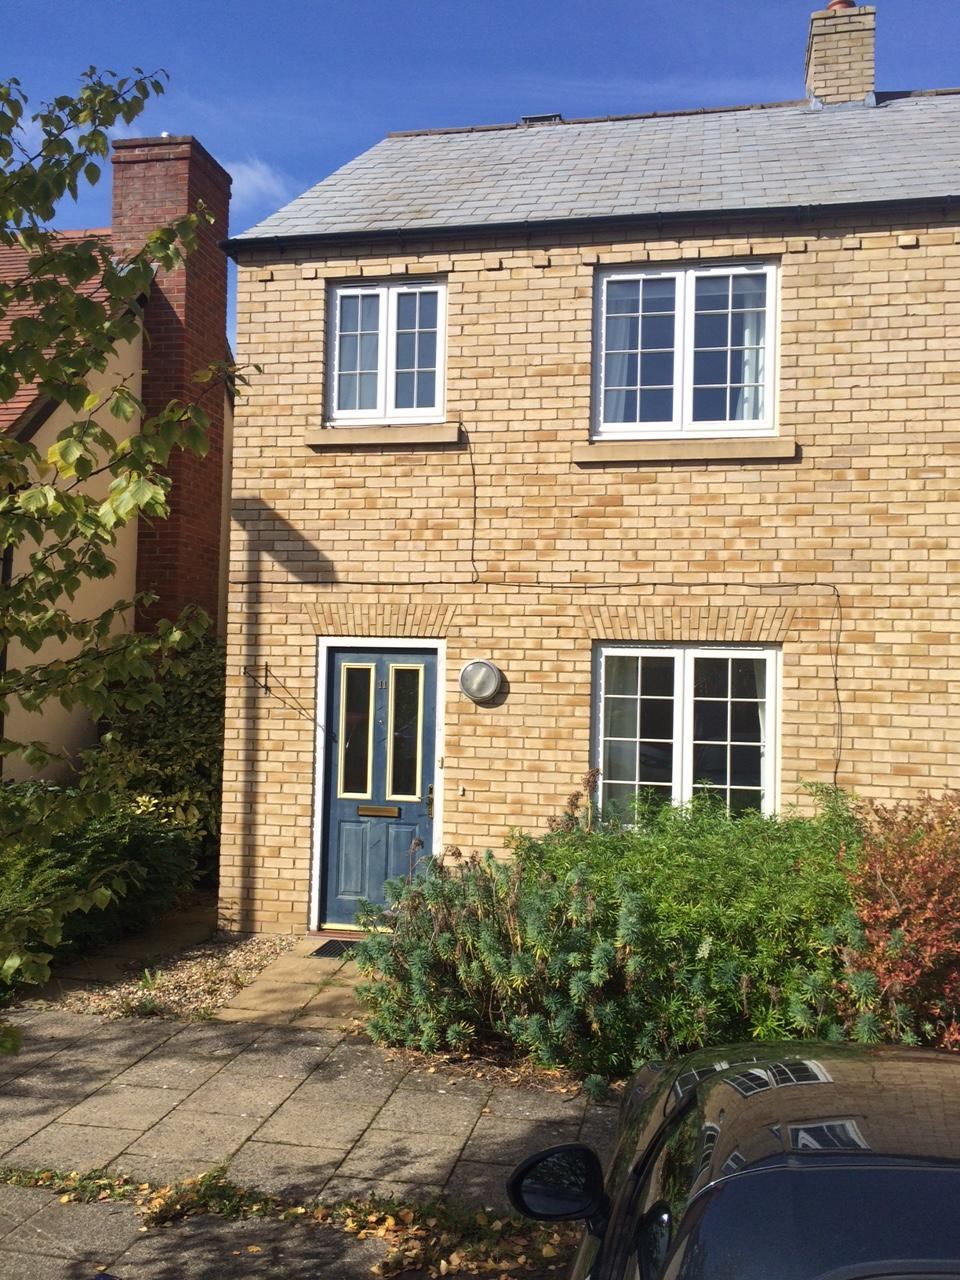 2 bed End Terraced House for rent in Lower Cambourne. From HC Property Lettings